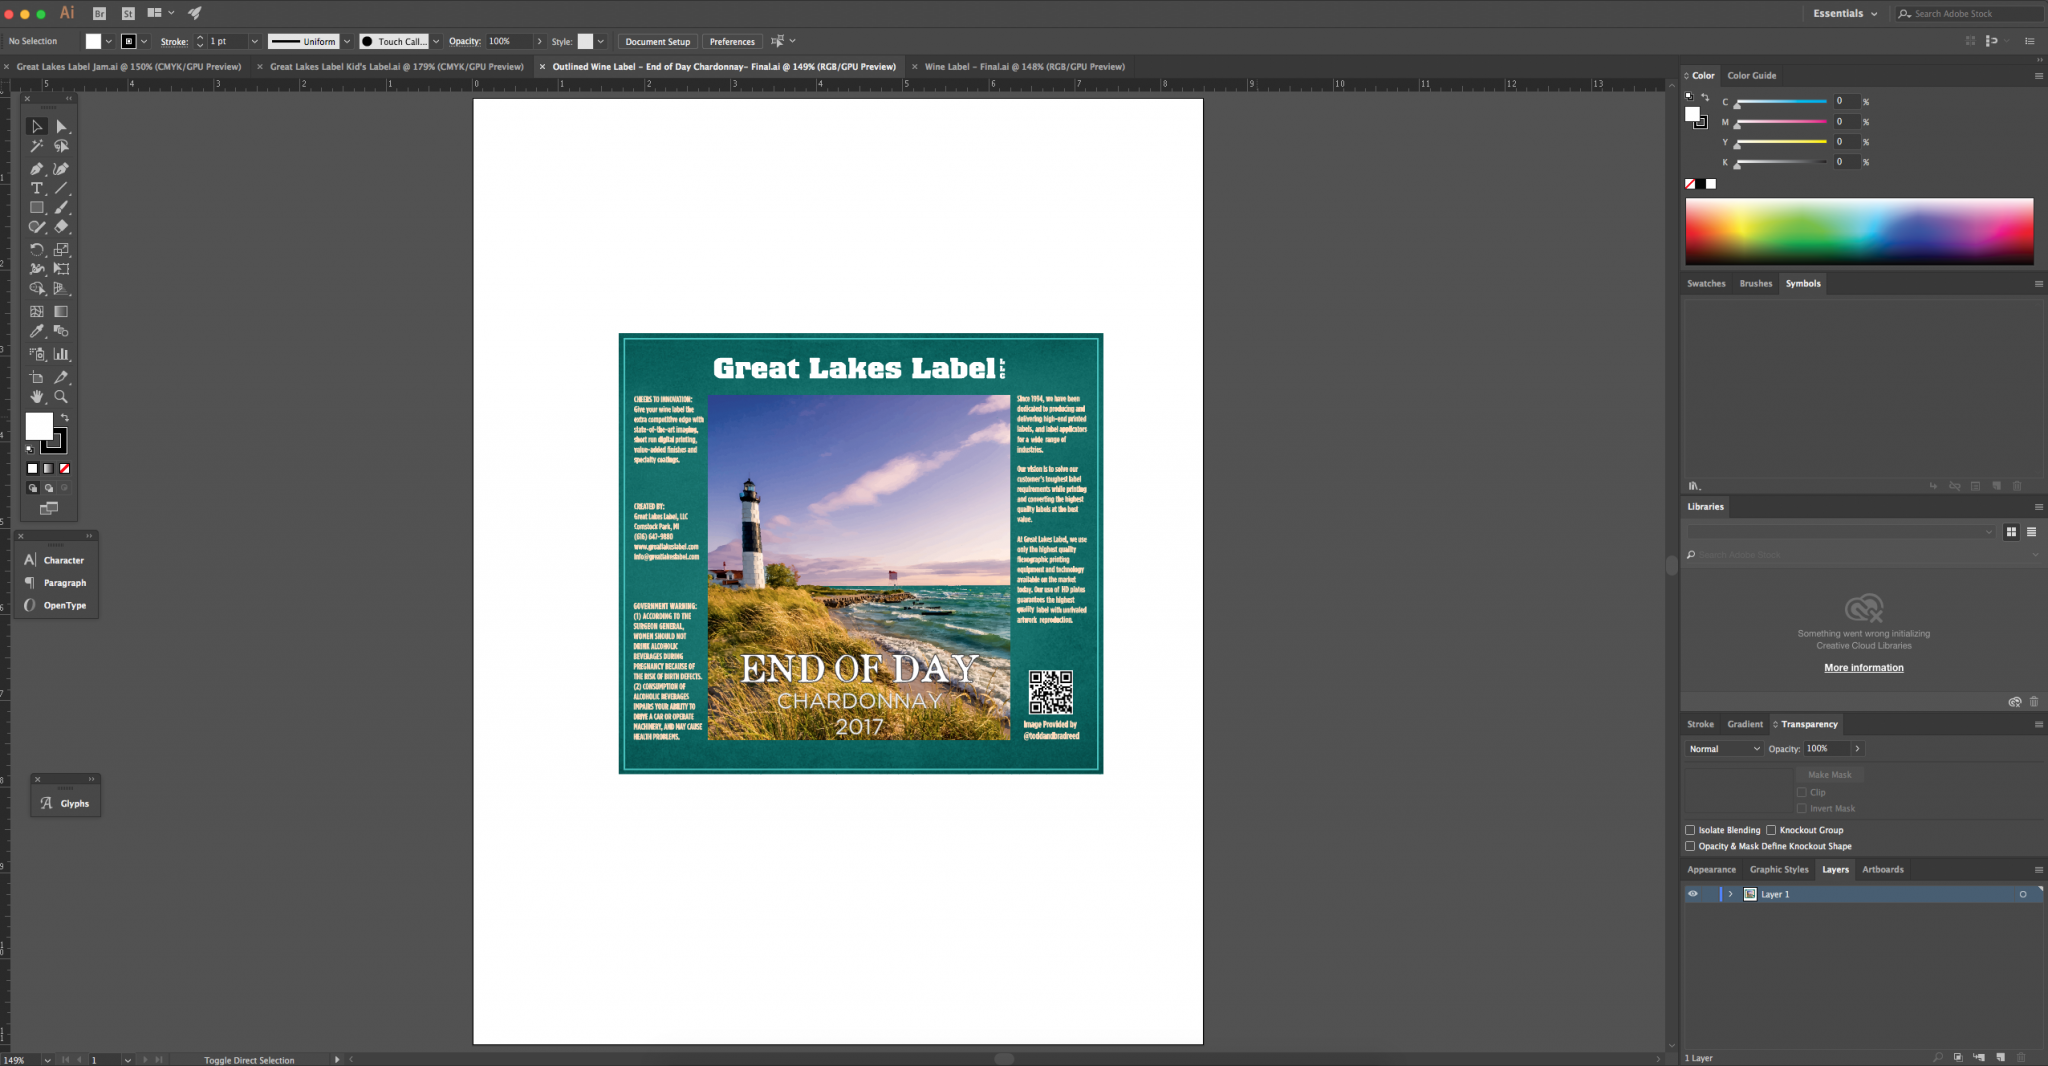 Great Lakes Label digital printed label in adobe illustrator - ai file